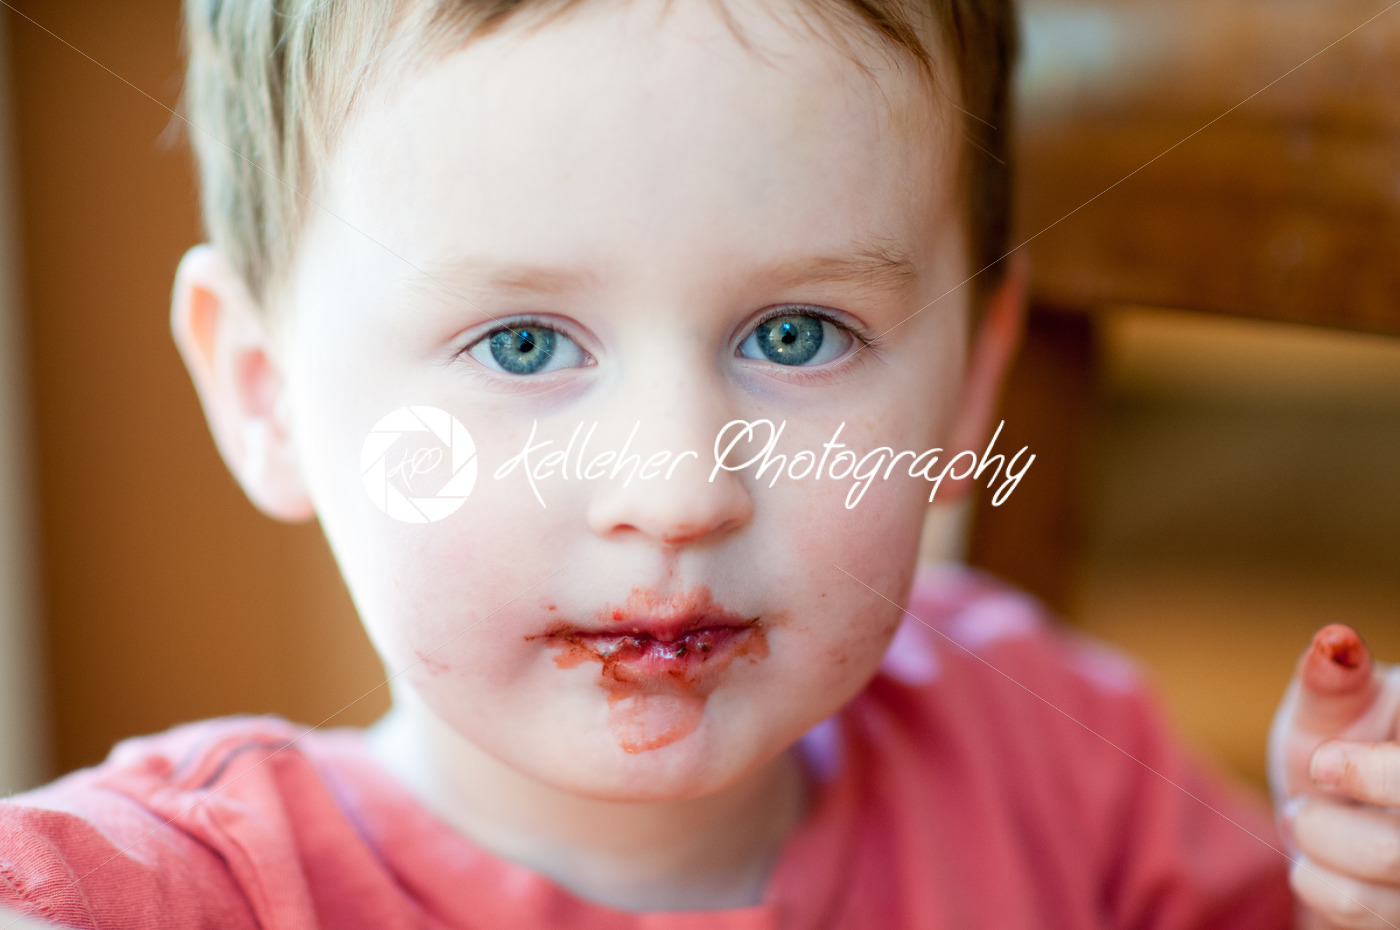 Little boy eating chocolate covered strawberries - Kelleher Photography Store